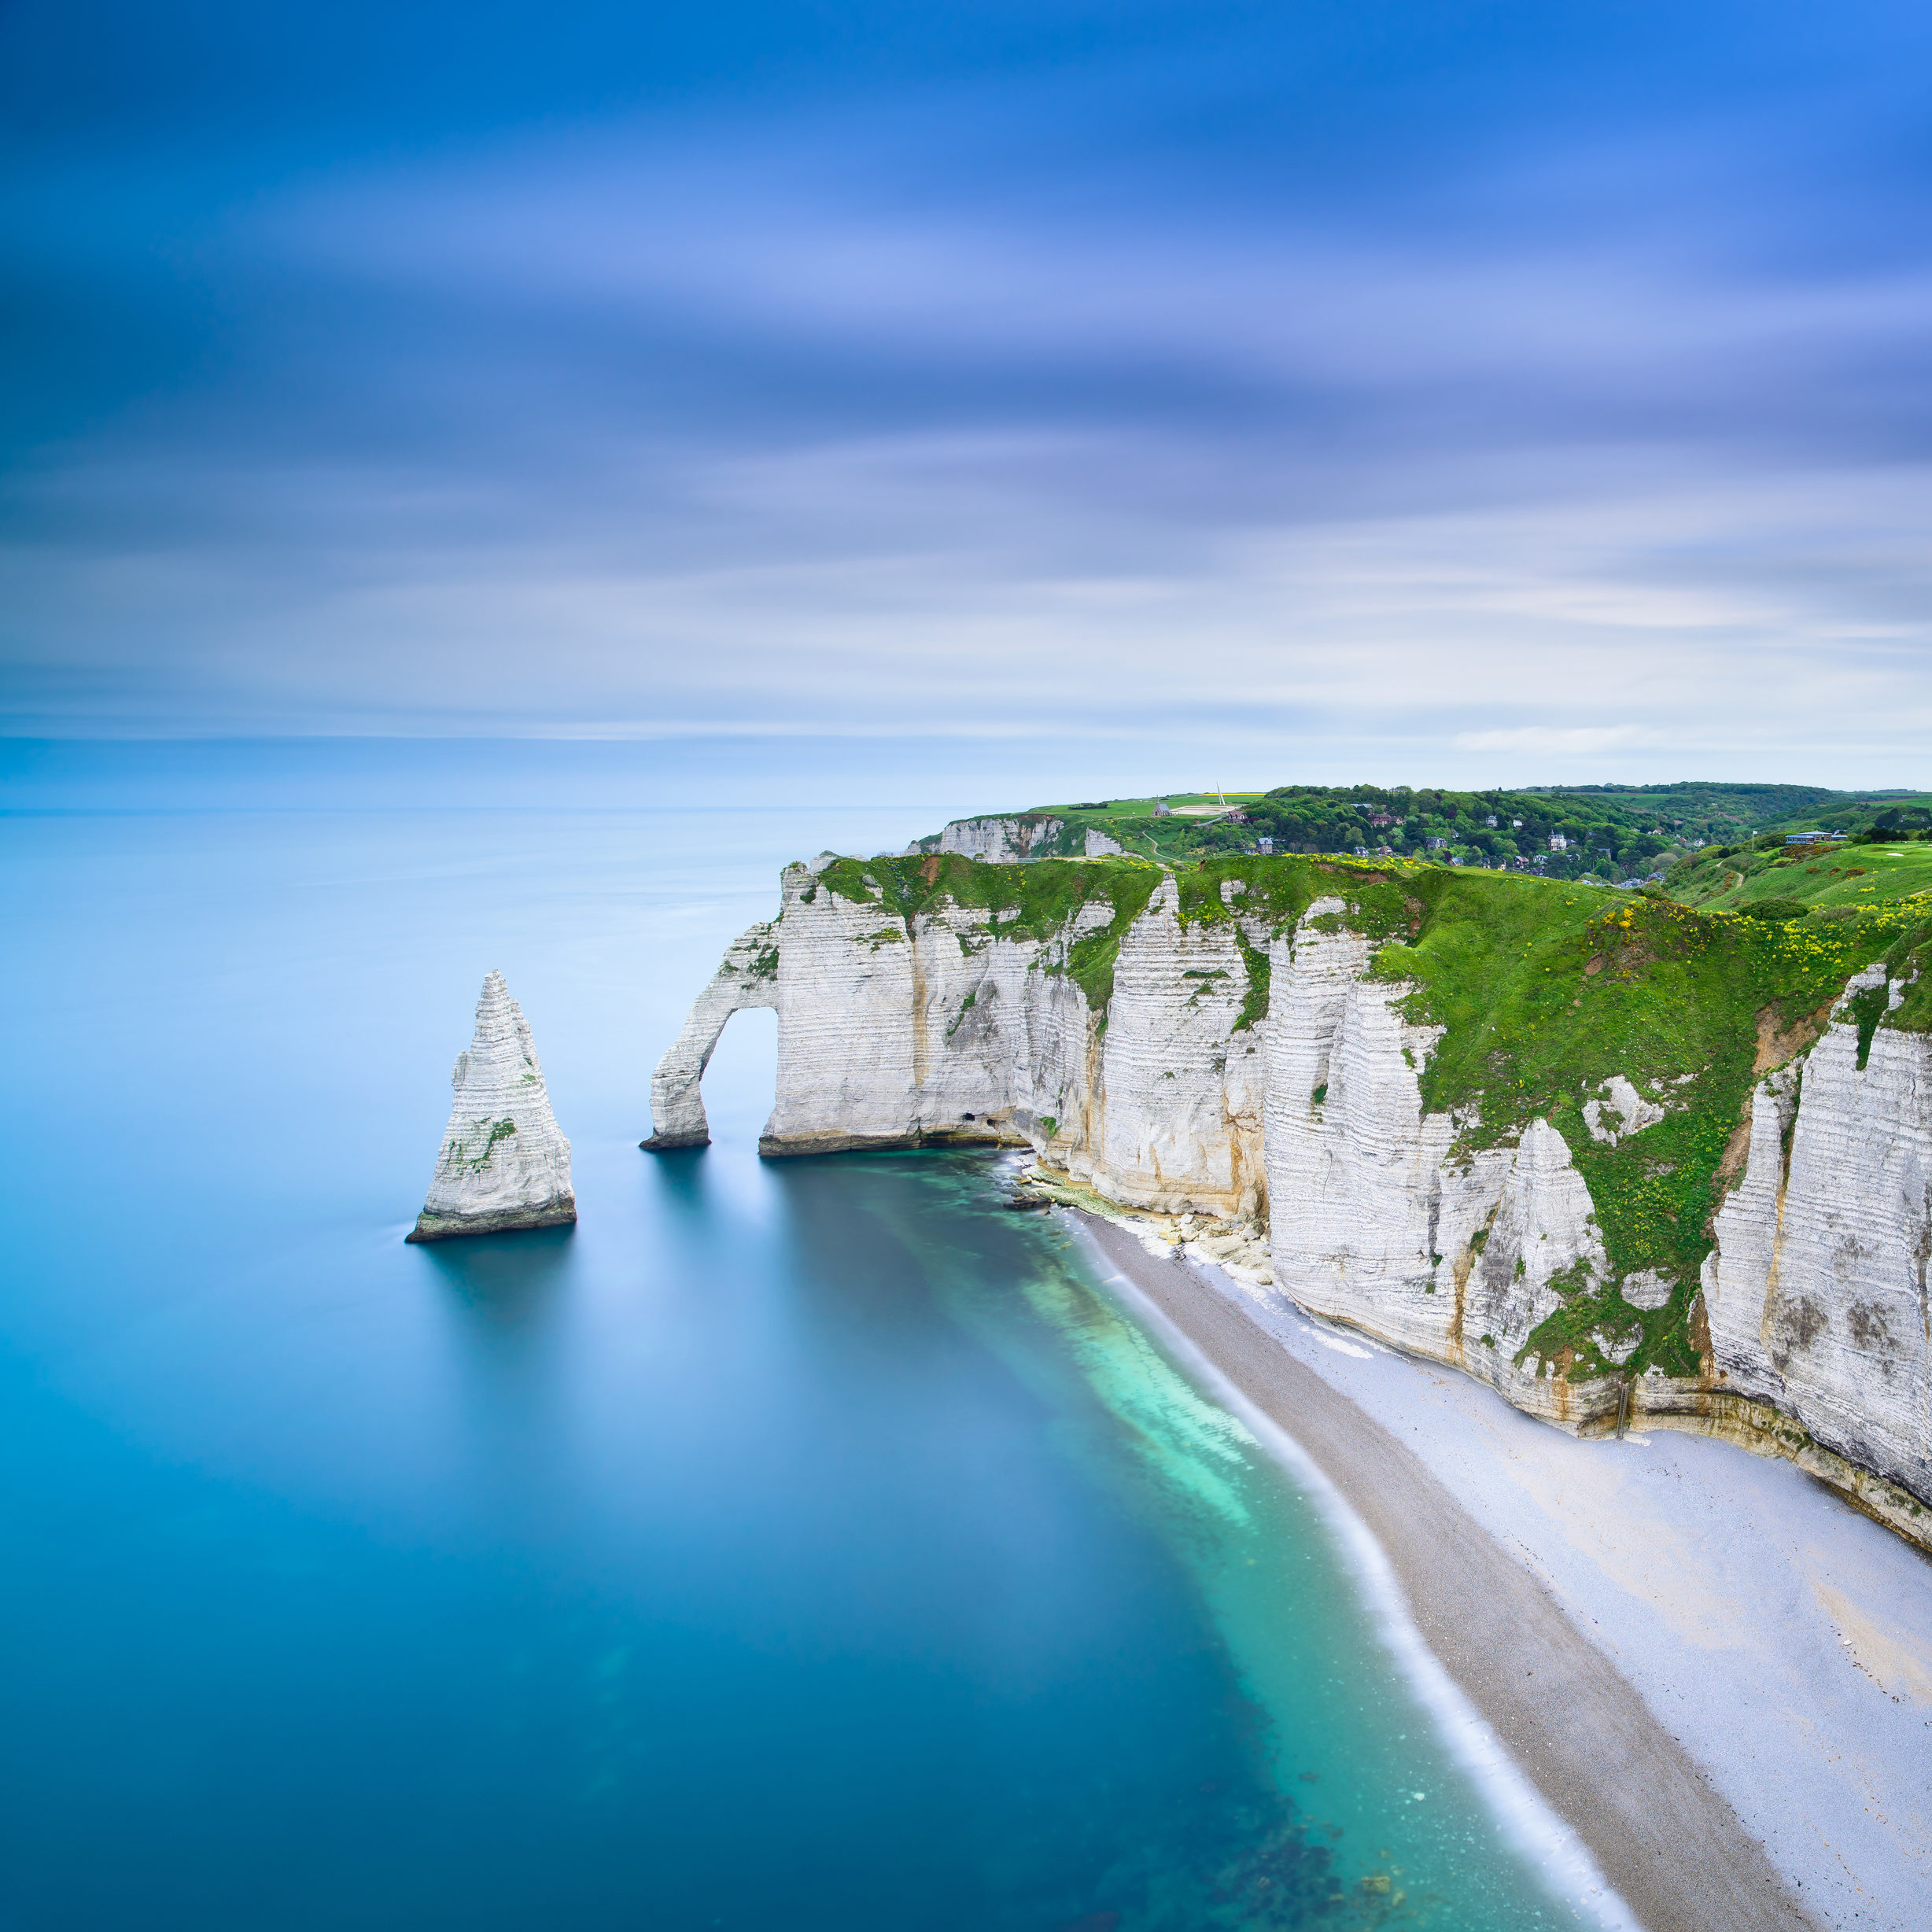 etretat-aval-cliff-and-rocks-landmark-and-ocean-no-PU2PCWT